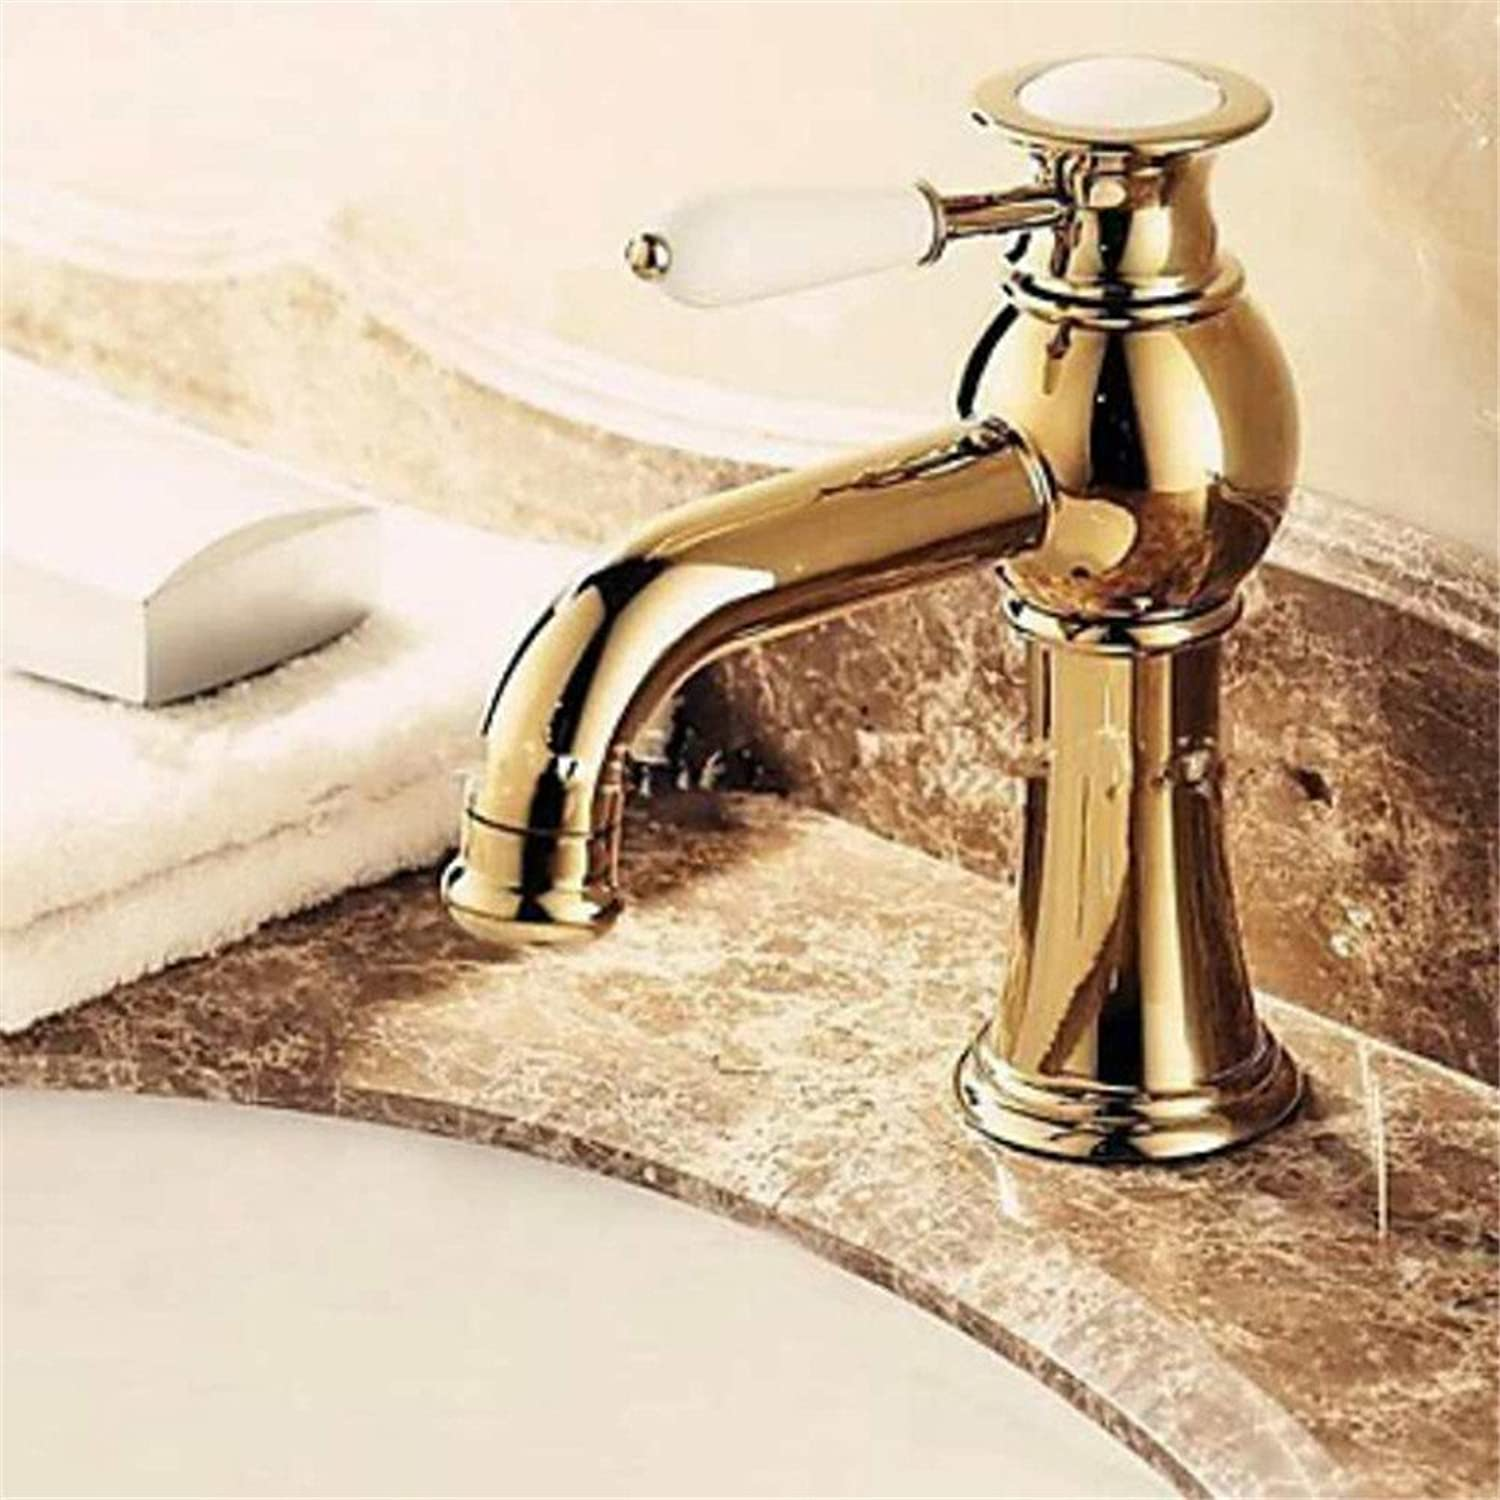 Hlluya Professional Sink Mixer Tap Kitchen Faucet The copper hot and cold water basin faucet single handle single handle gold plated basin mixer